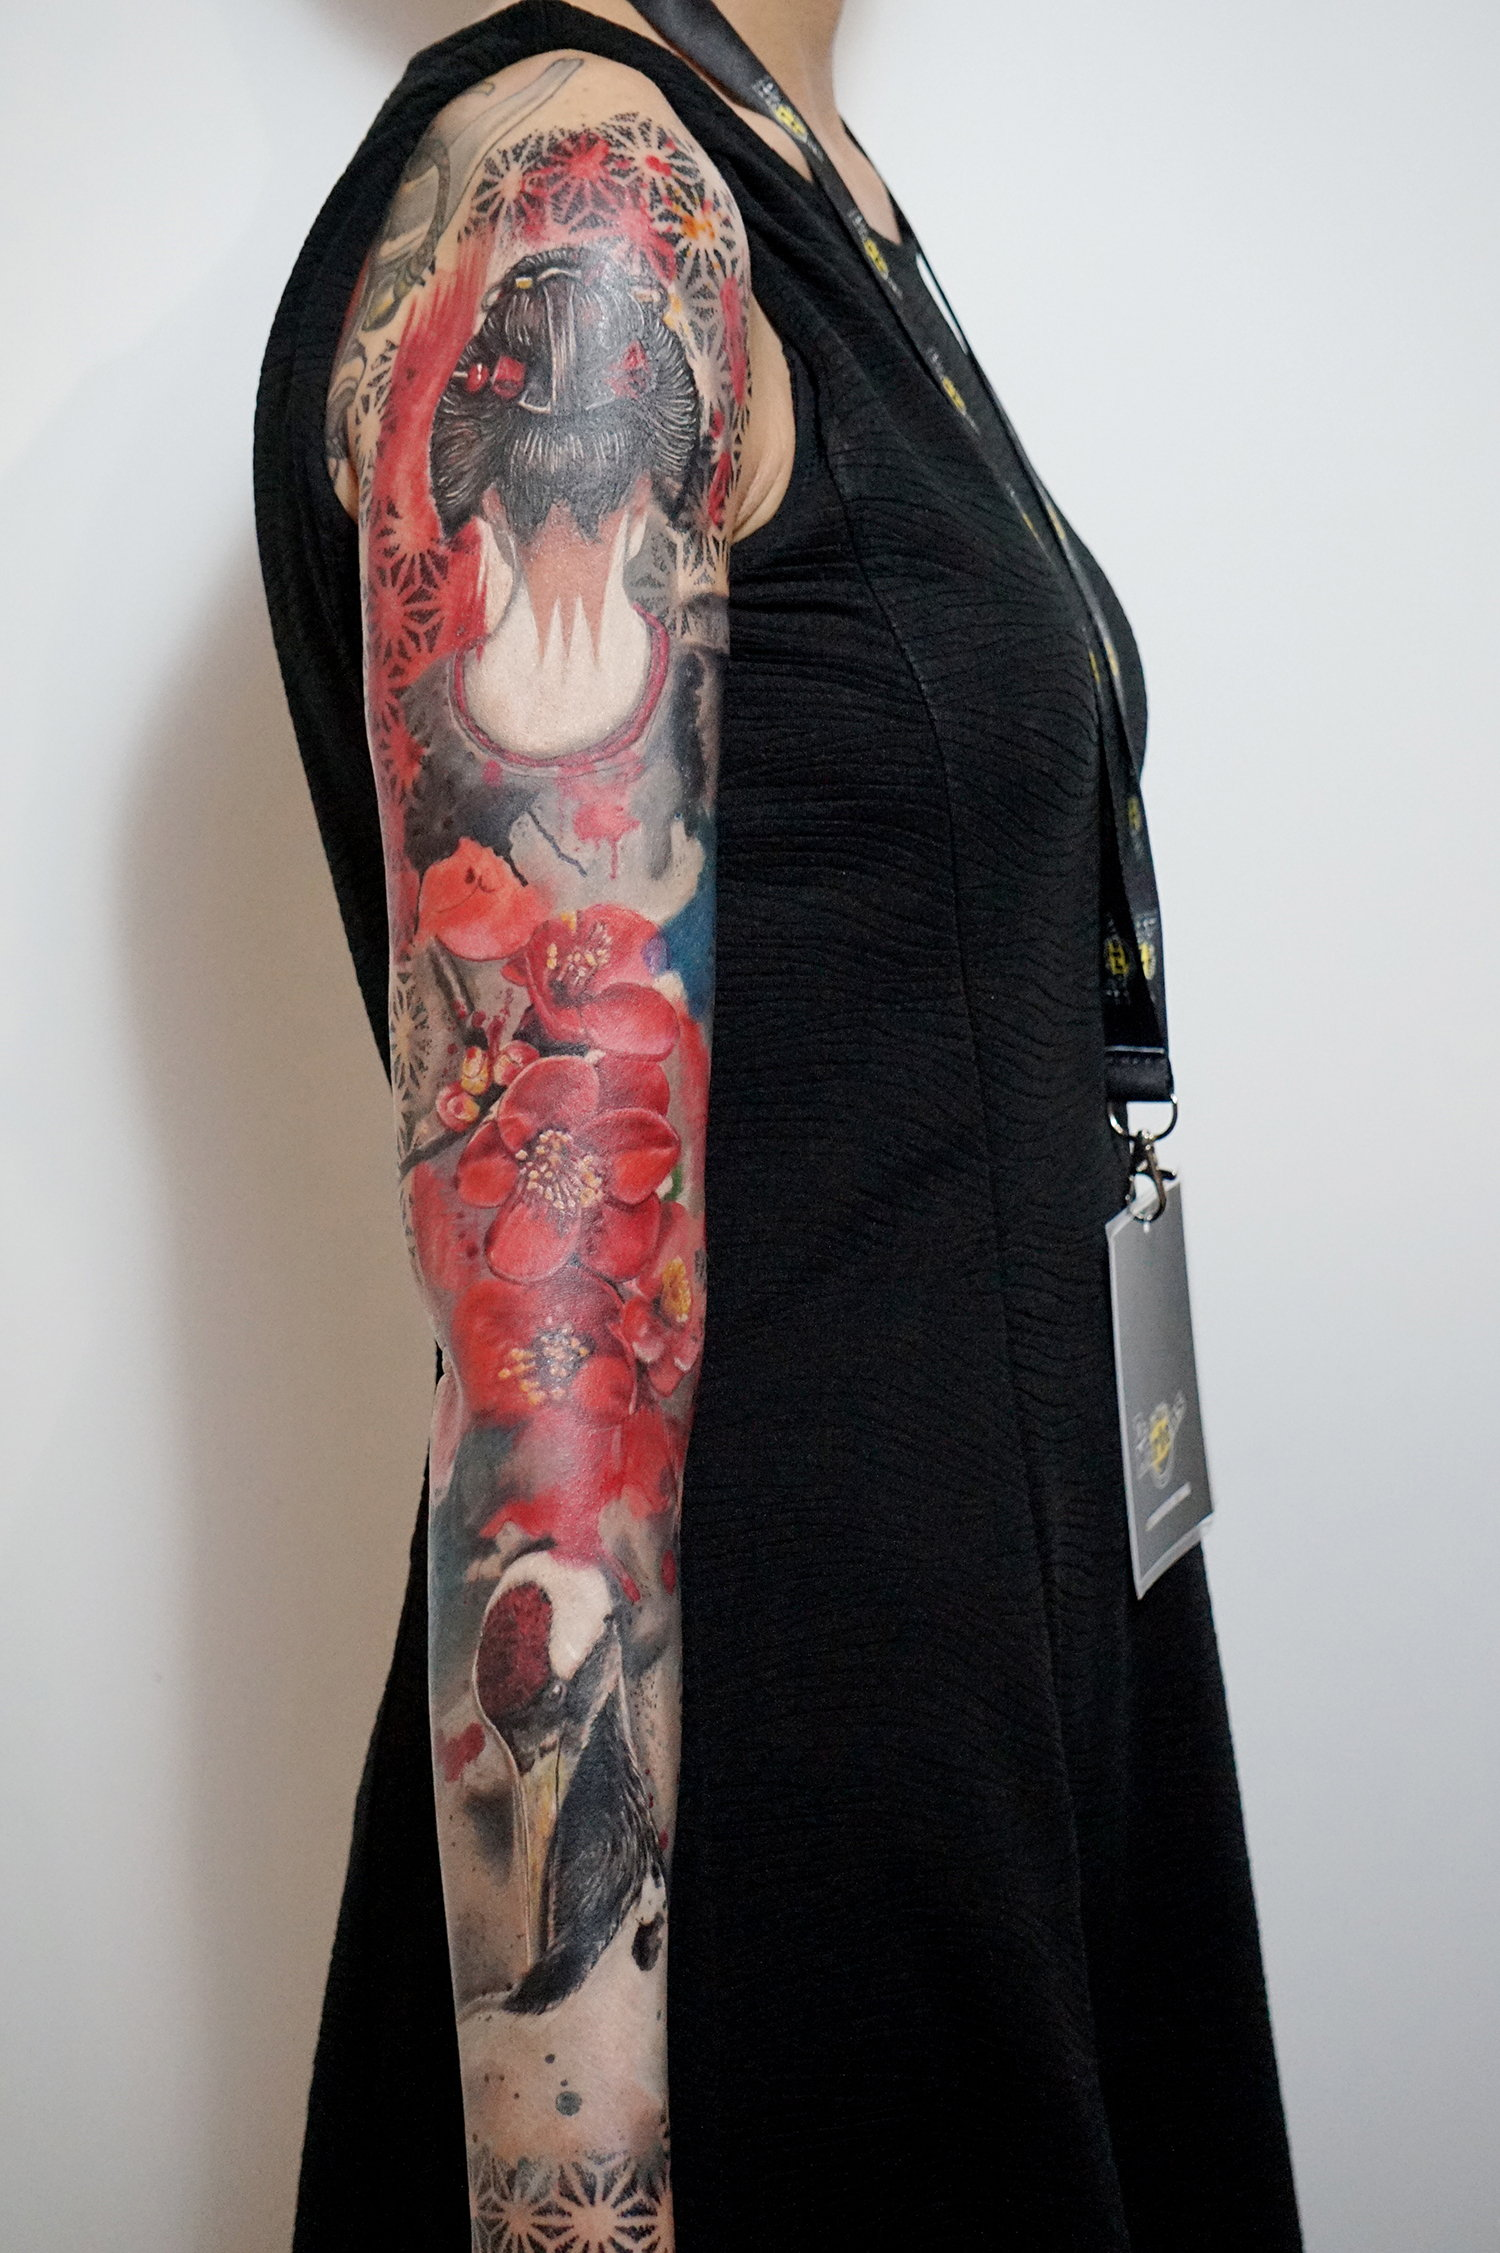 Andy Kemp's completed work at the Lisbon Tattoo Rock Fest 2019